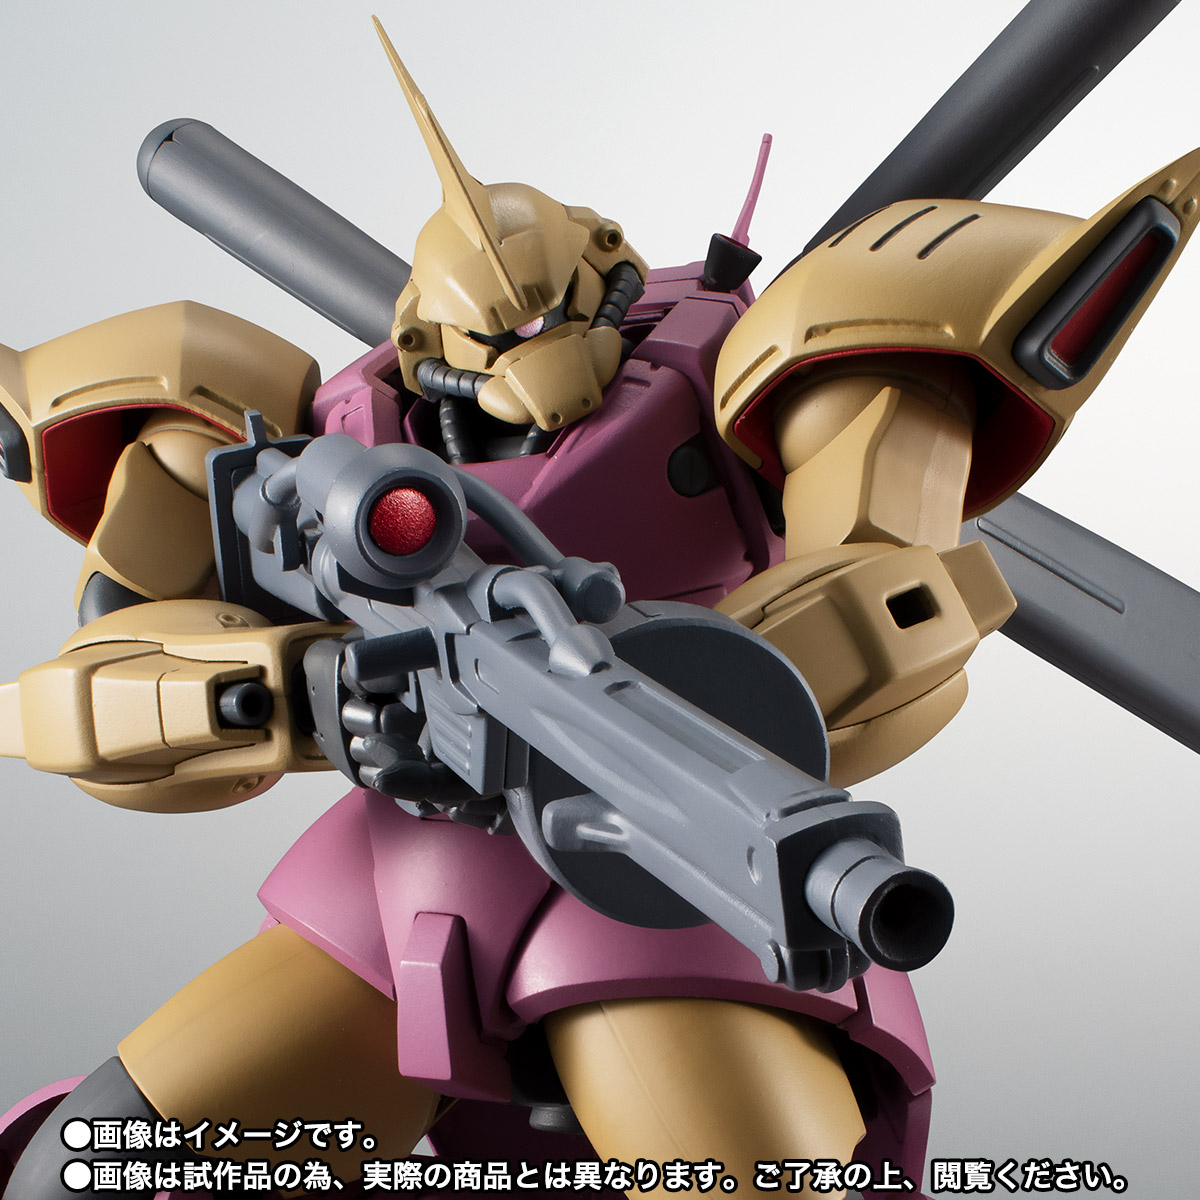 ROBOT魂 ver. A.N.I.M.E. <SIDE MS> MS-14Fs ゲルググM指揮官機(シーマ・ガラハウ機) ver. A.N.I.M.E. 01